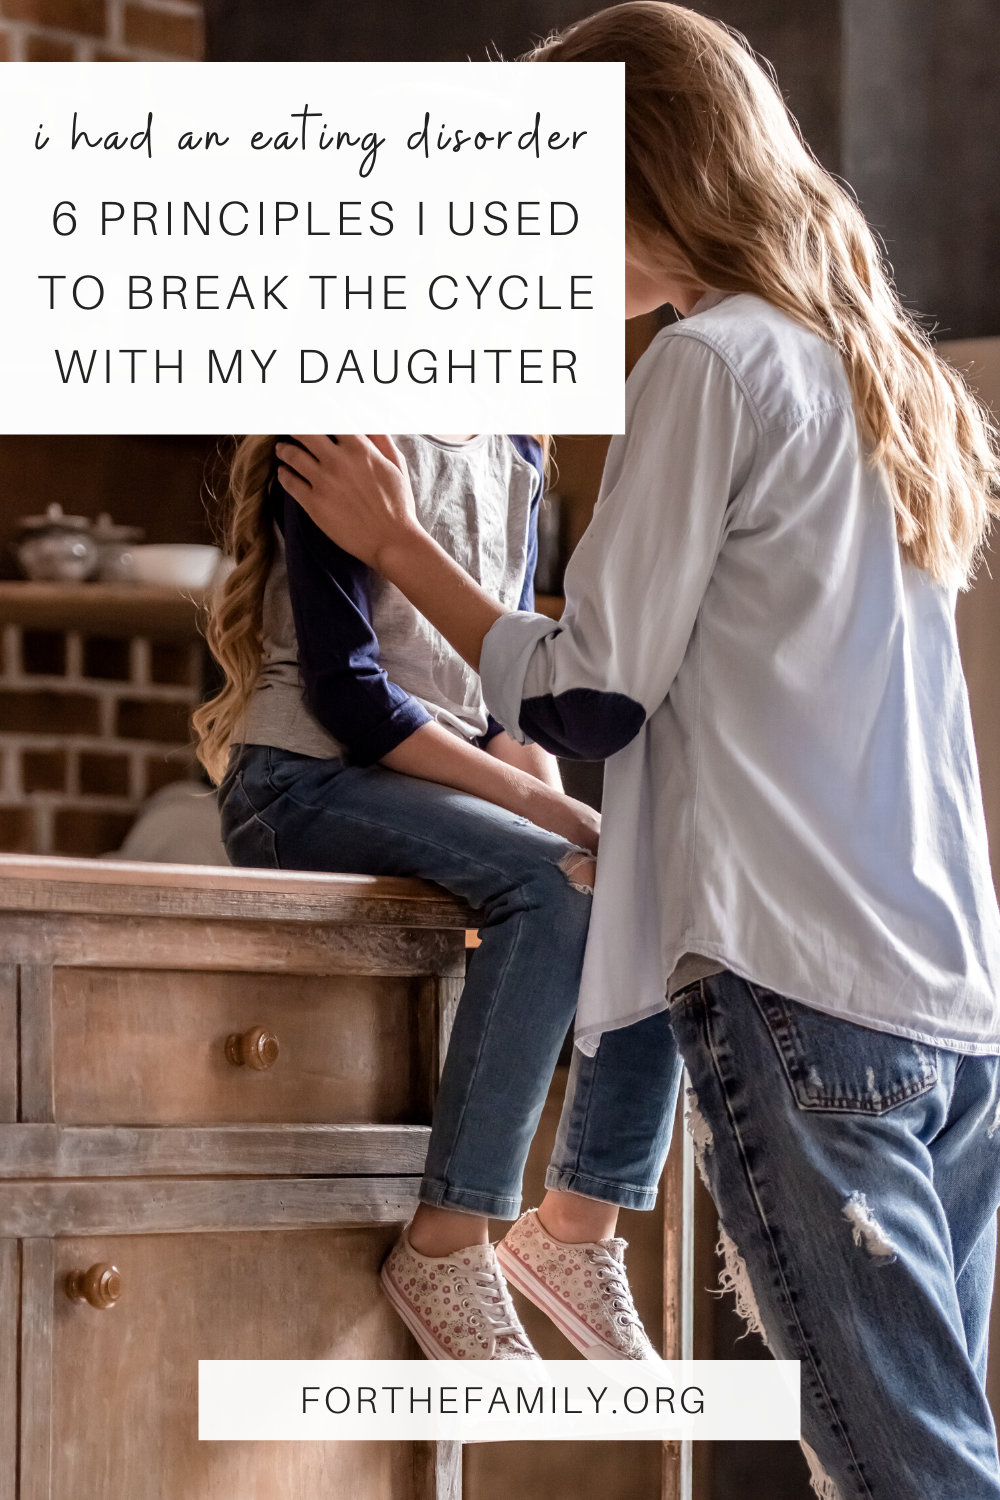 When I gave birth to a daughter, I felt ill-equipped to raise her. At twenty-three, I was still a girl myself, struggling with my own issues – an eating disorder, insecurities, and identity issues. If I struggled with my own body issues, how was I going to raise a girl with a healthy self-image?